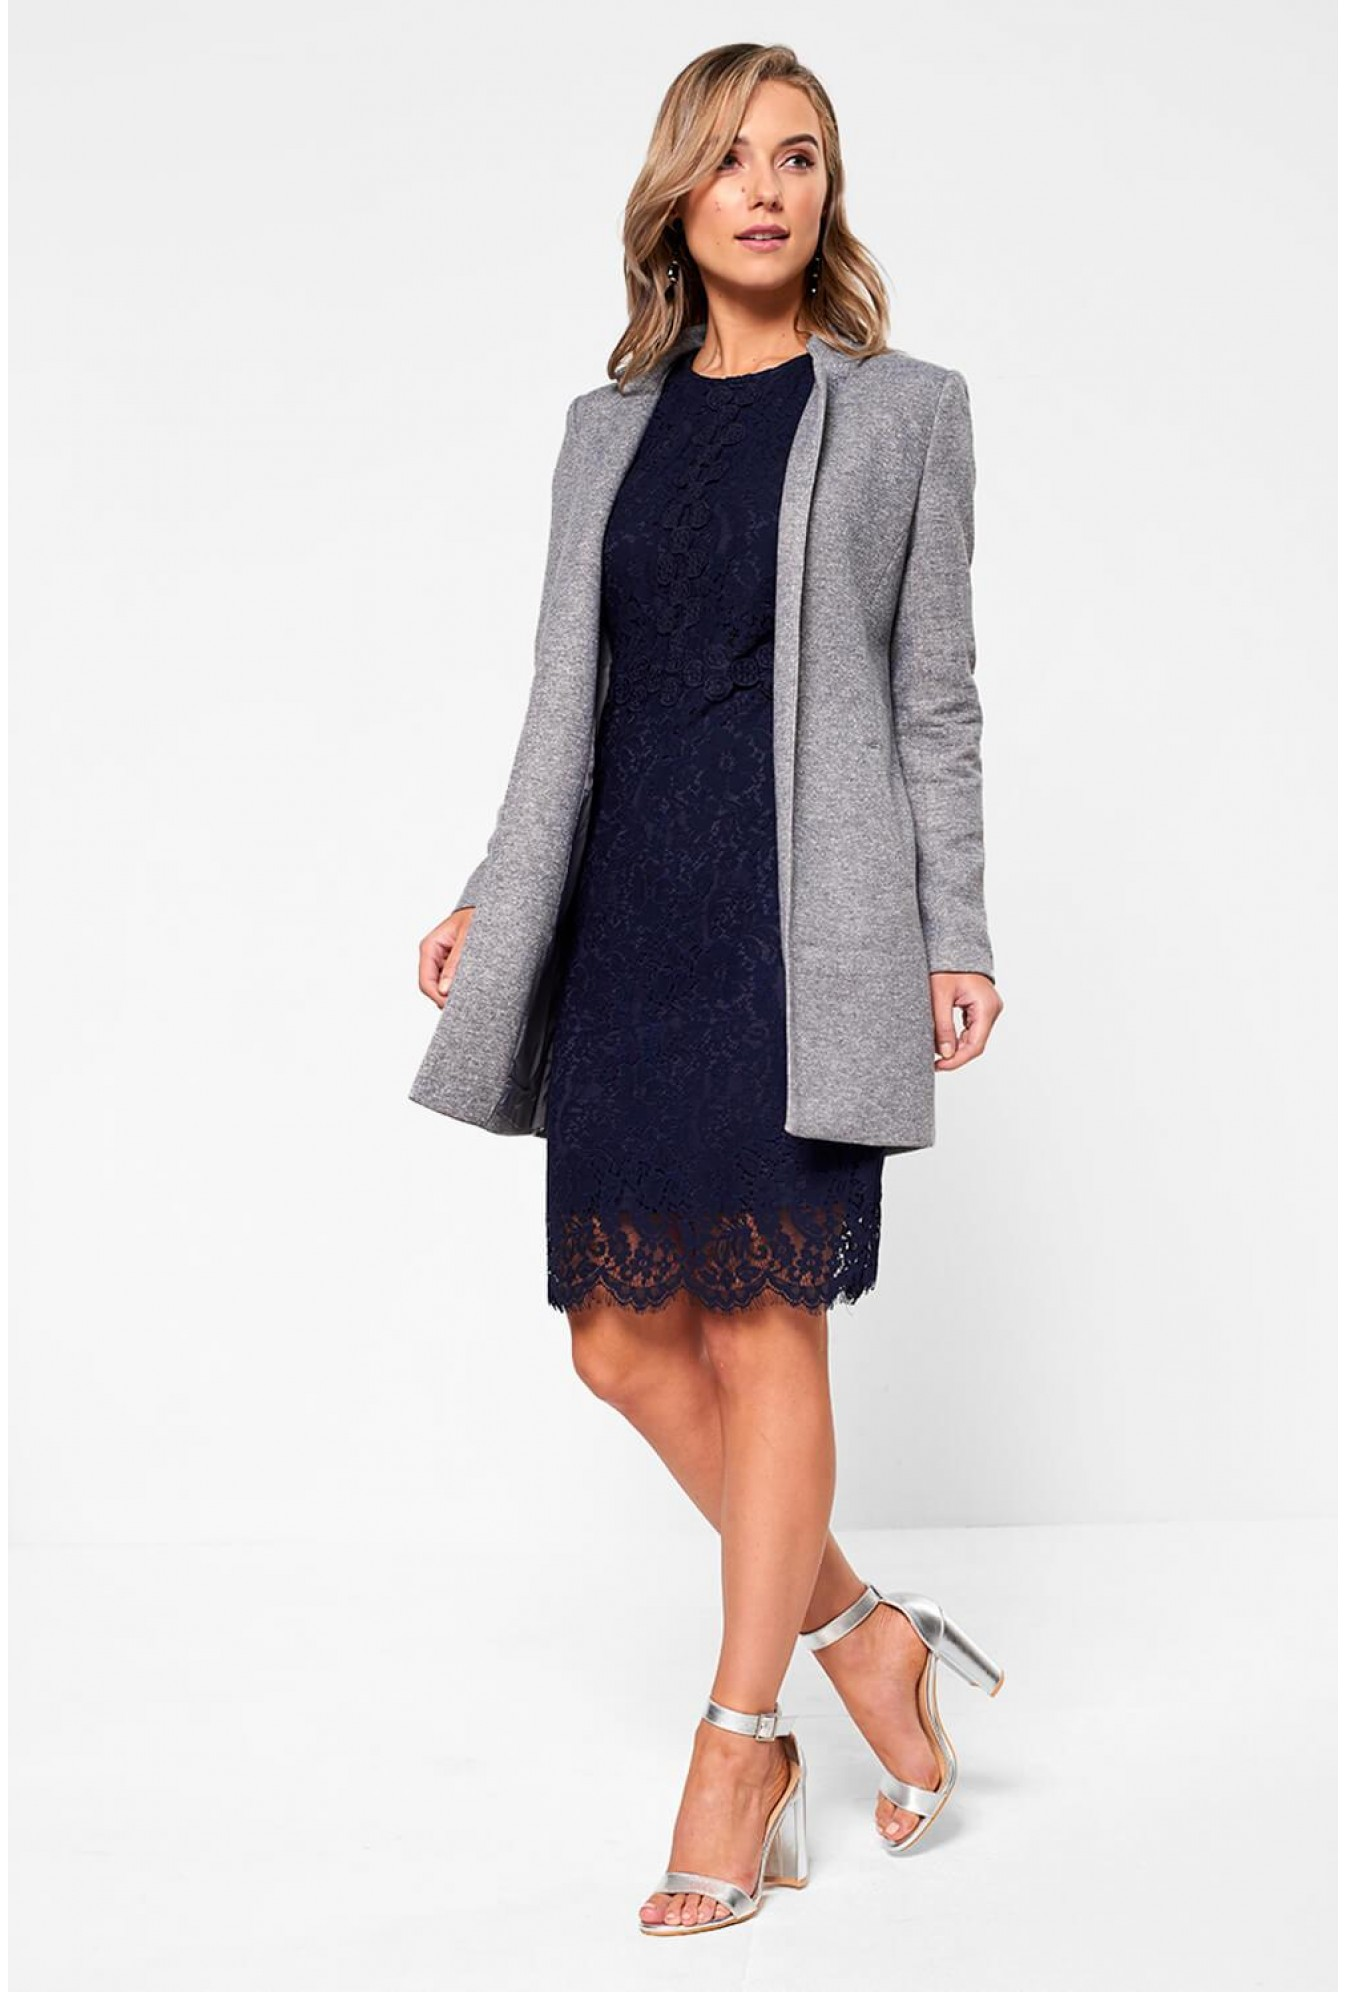 107125f76e57 More Views. Katie Long Sleeve Lace Dress in Navy. Marc Angelo